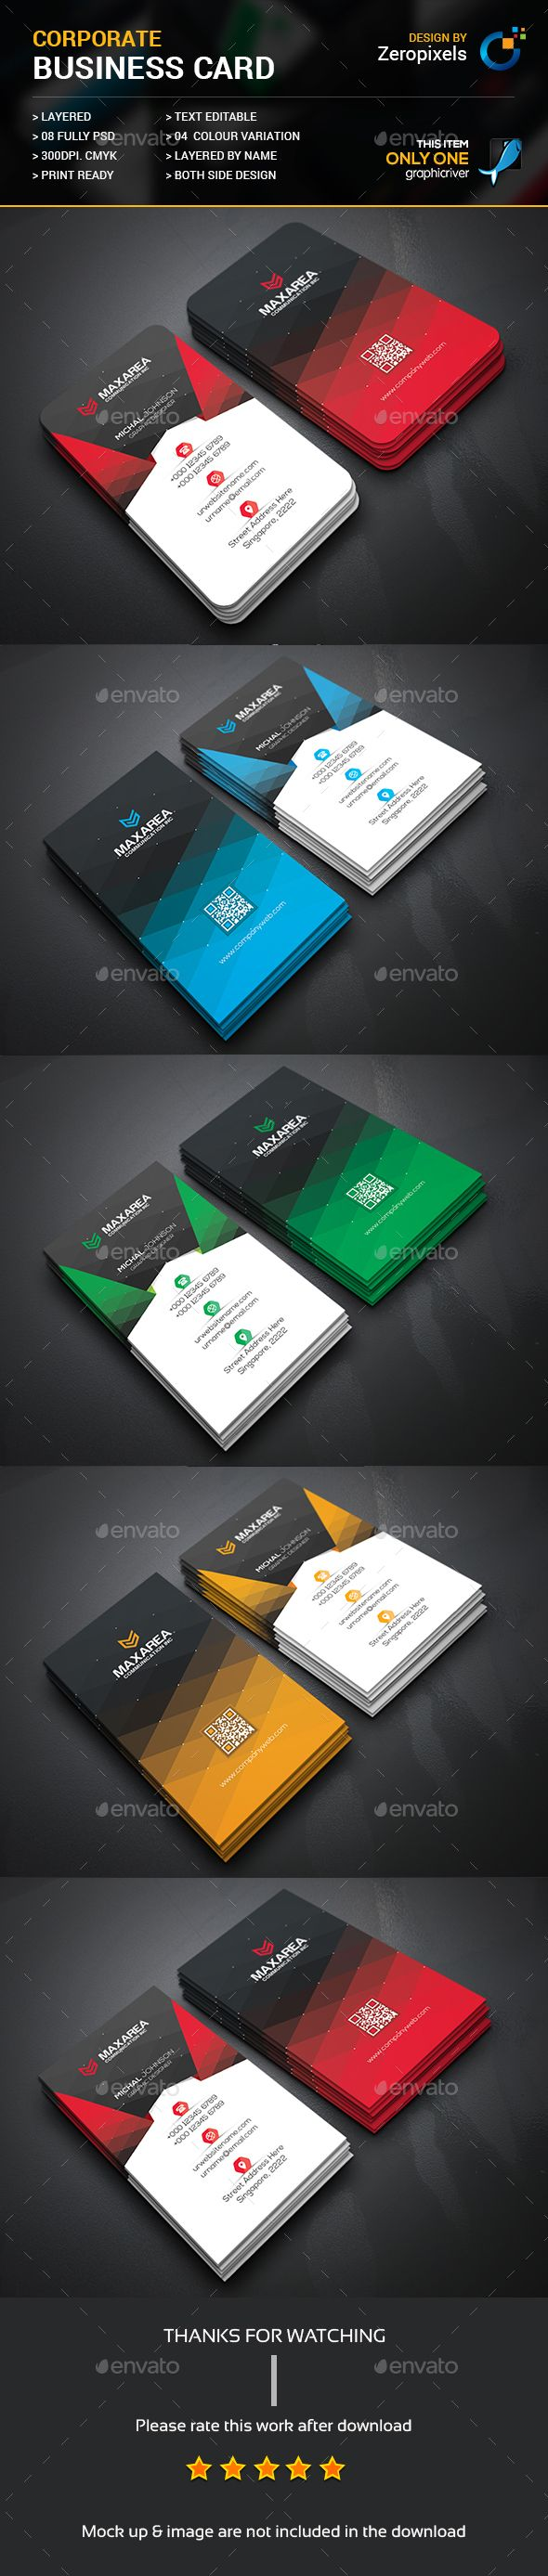 279 best Business Card images on Pinterest | Business card ...